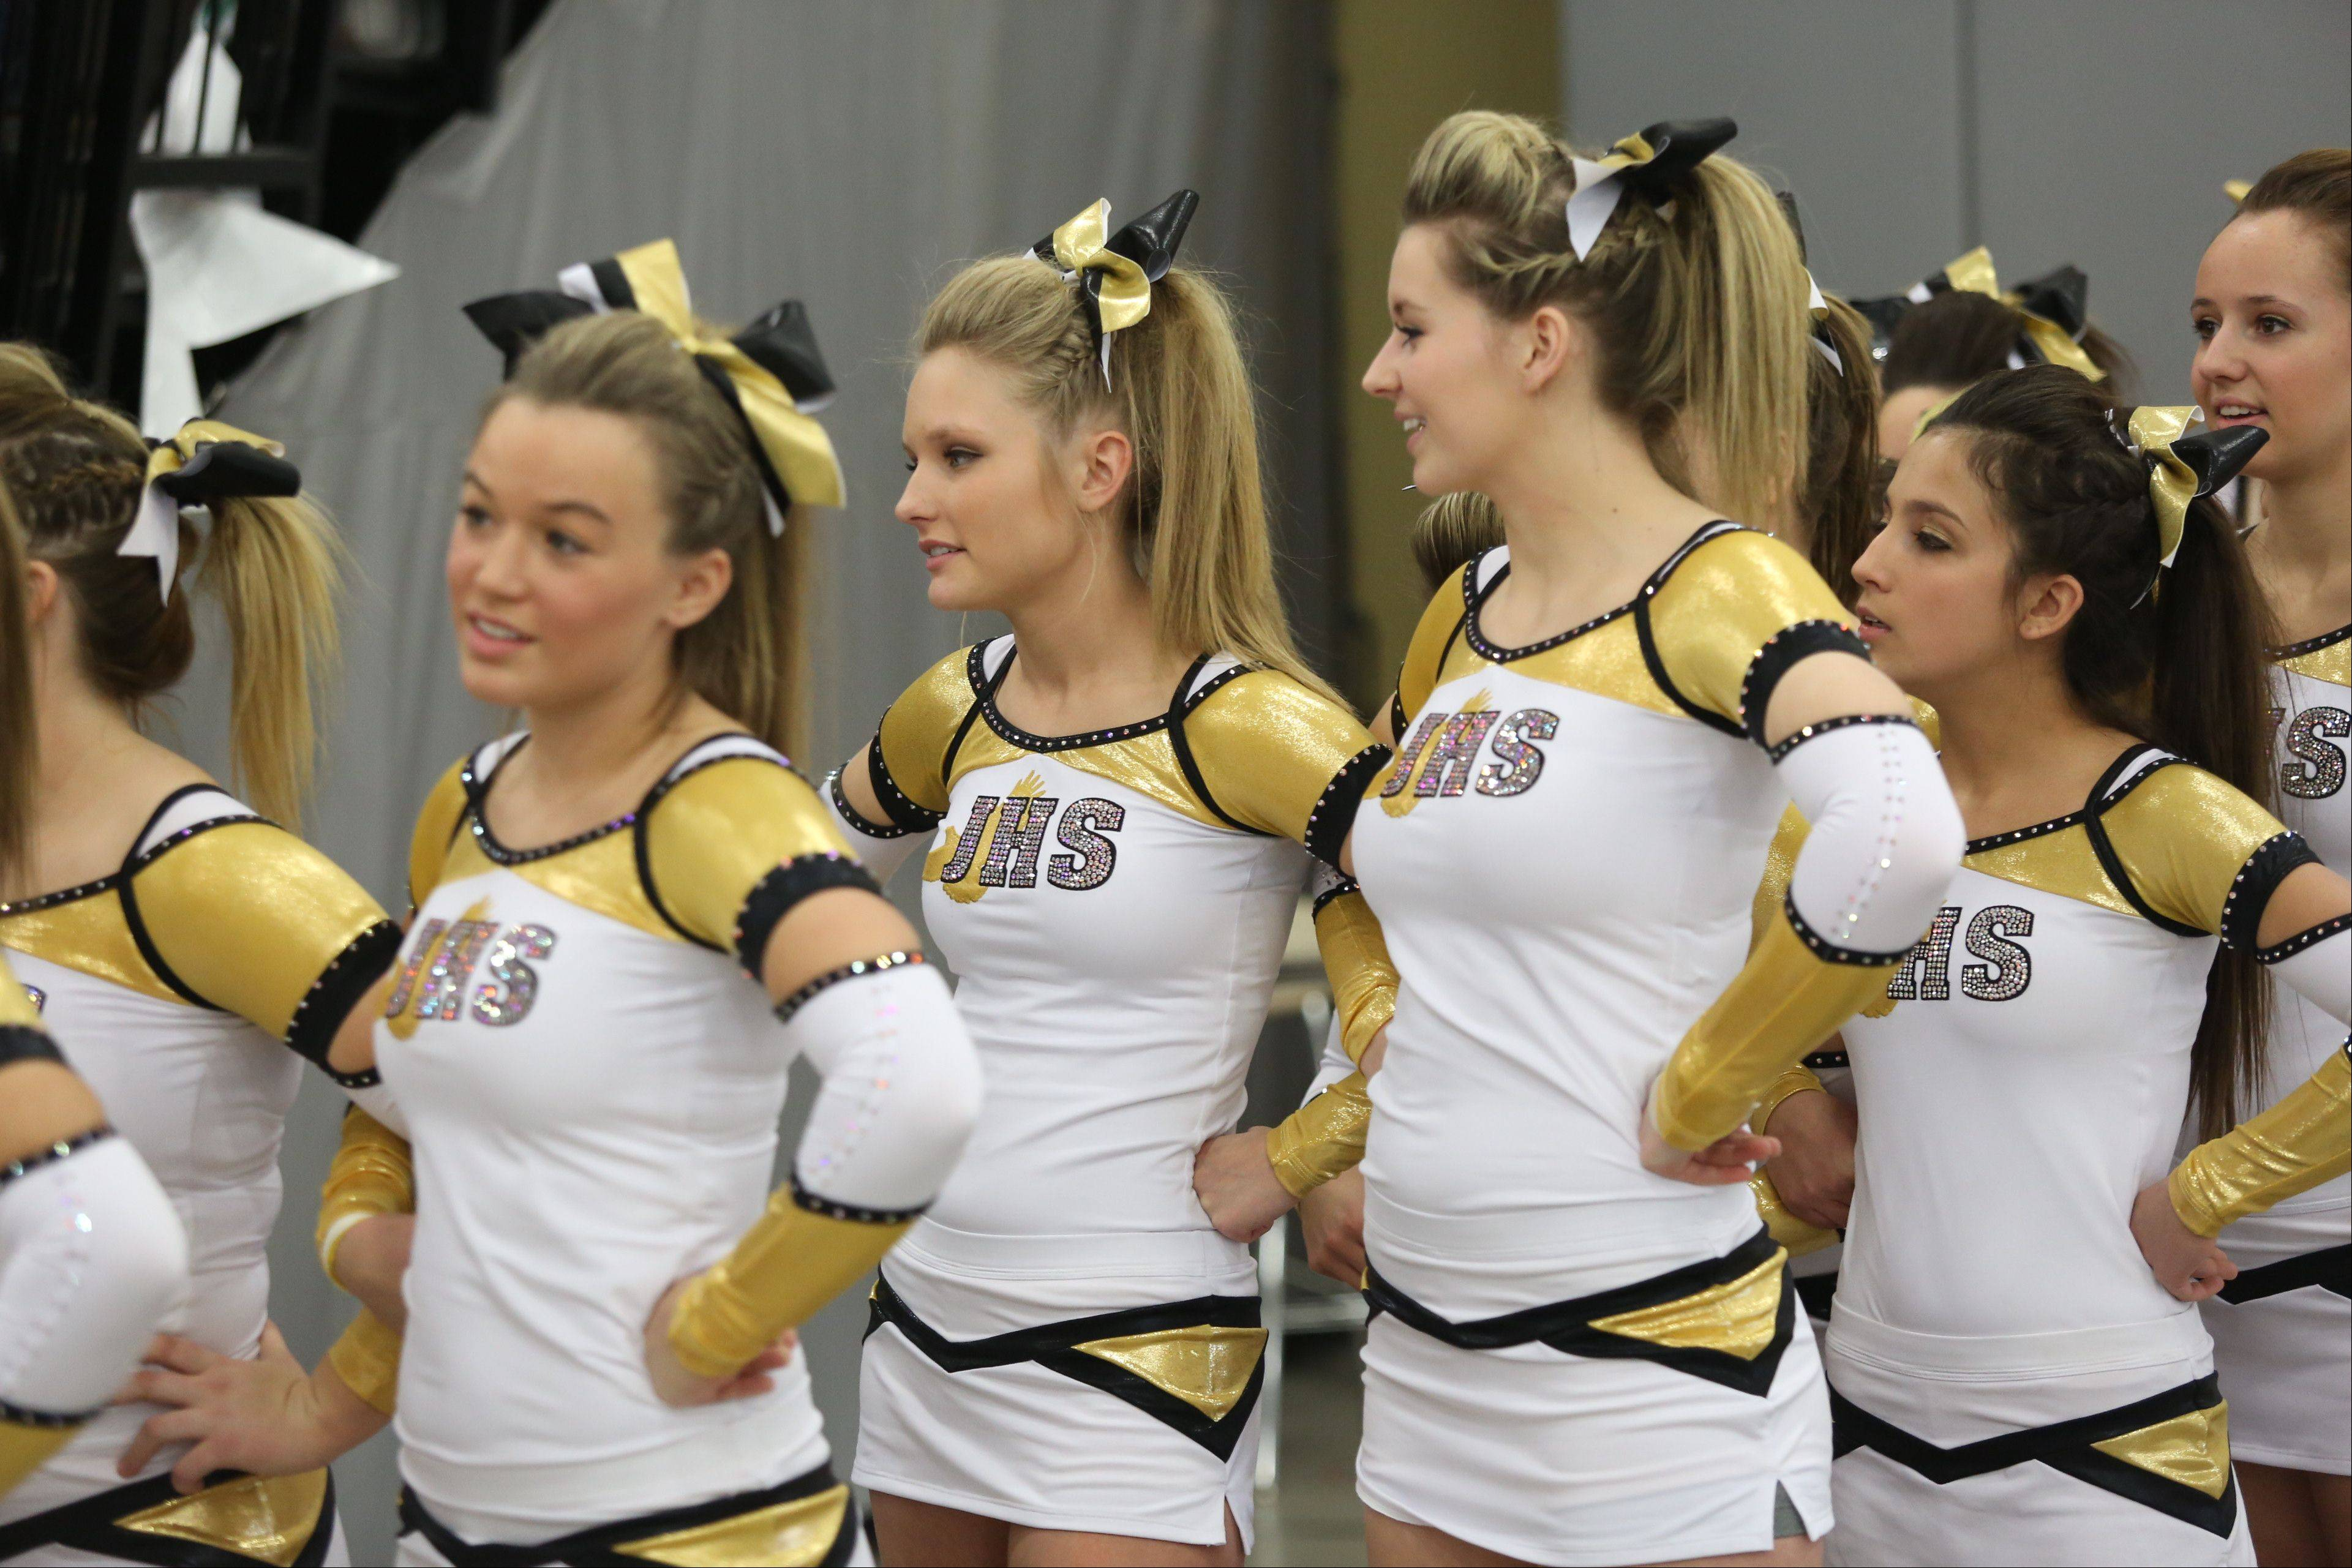 Jacobs High School cheerleaders wait to compete in the Large Team category during the IHSA Cheerleading Sectional Sunday hosted by Grayslake North High School.